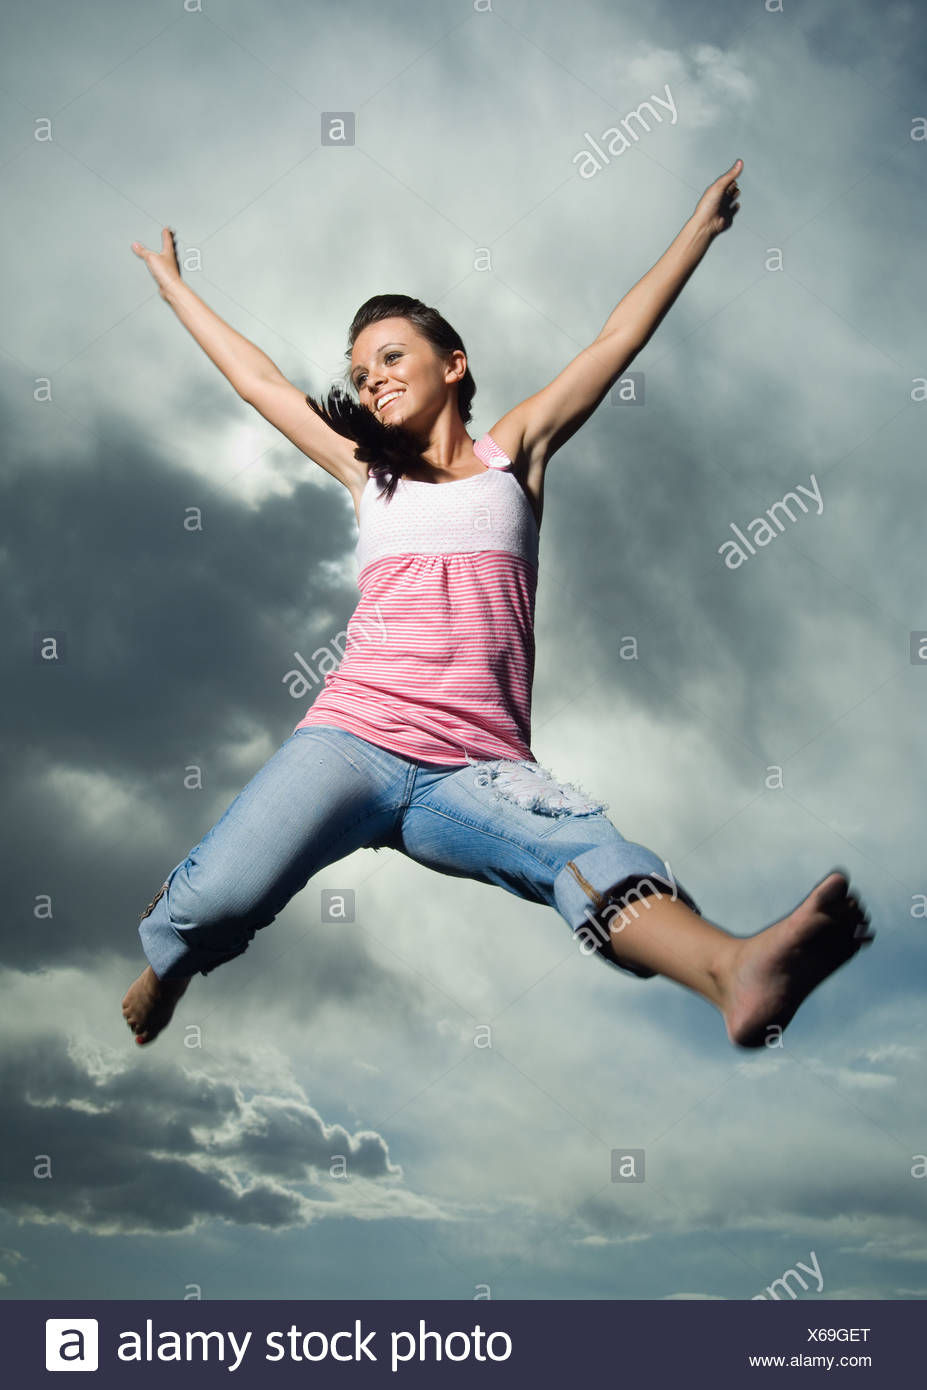 Low angle view of woman jumping - Stock Image